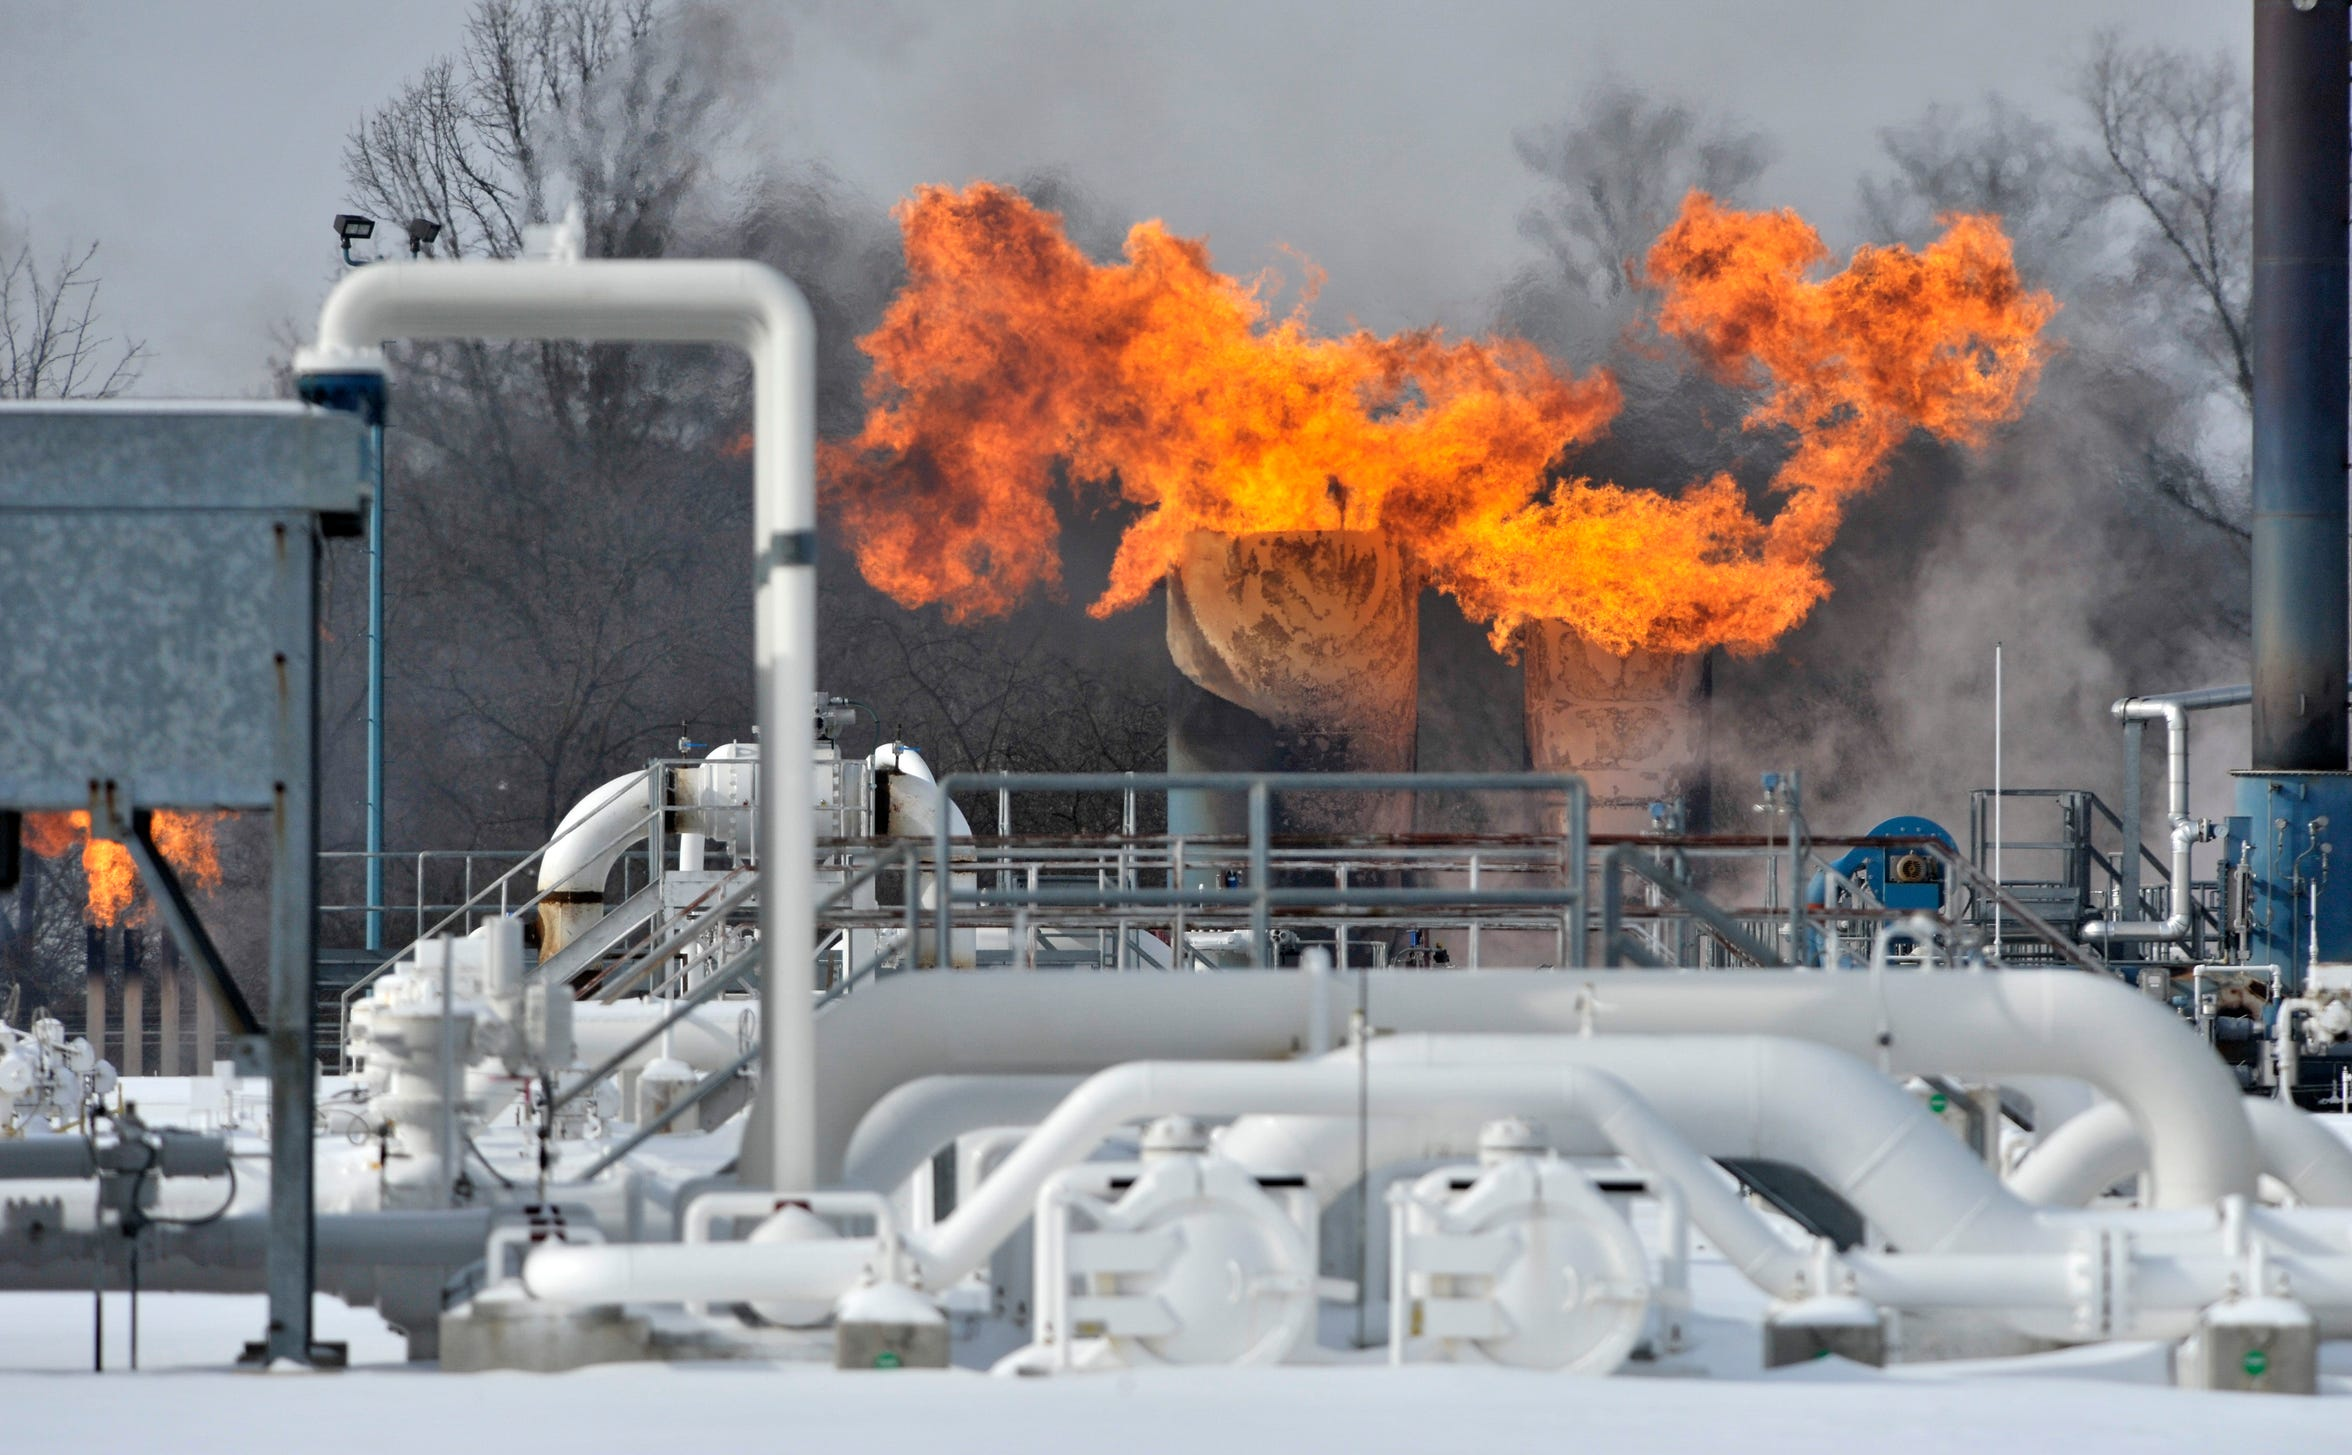 Fire erupts at a Consumers Energy compressor station, in Armada Twp. January 30, 2019. The loss of the station led Consumers Energy to request that Michigan residents lower their thermostats during subzero temperatures for several days.